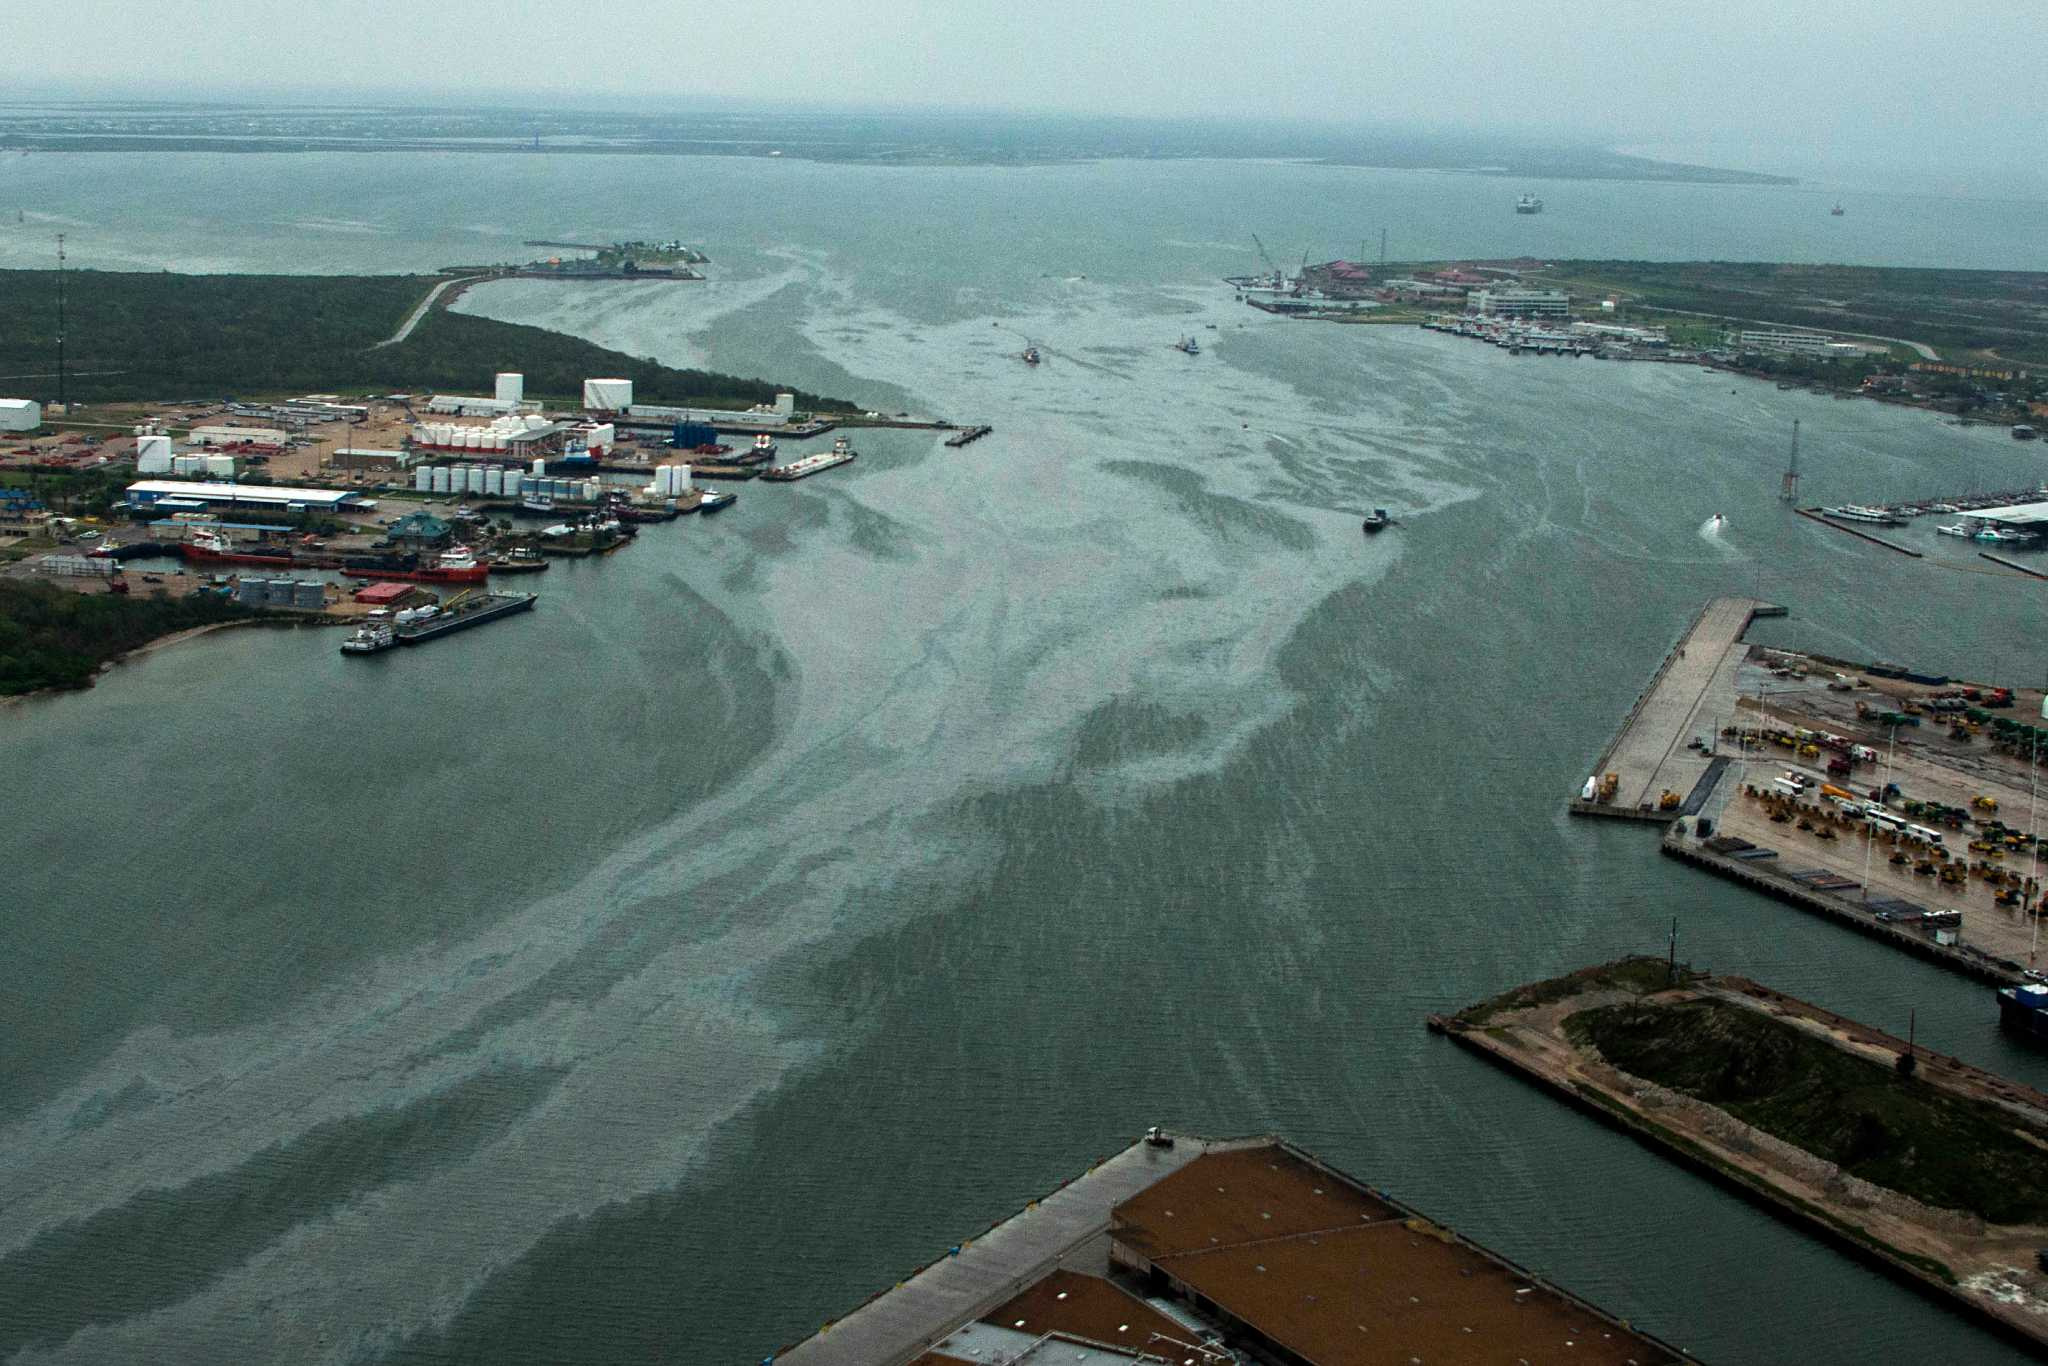 Hearings begin on cause of collision, oil spill - Houston ...